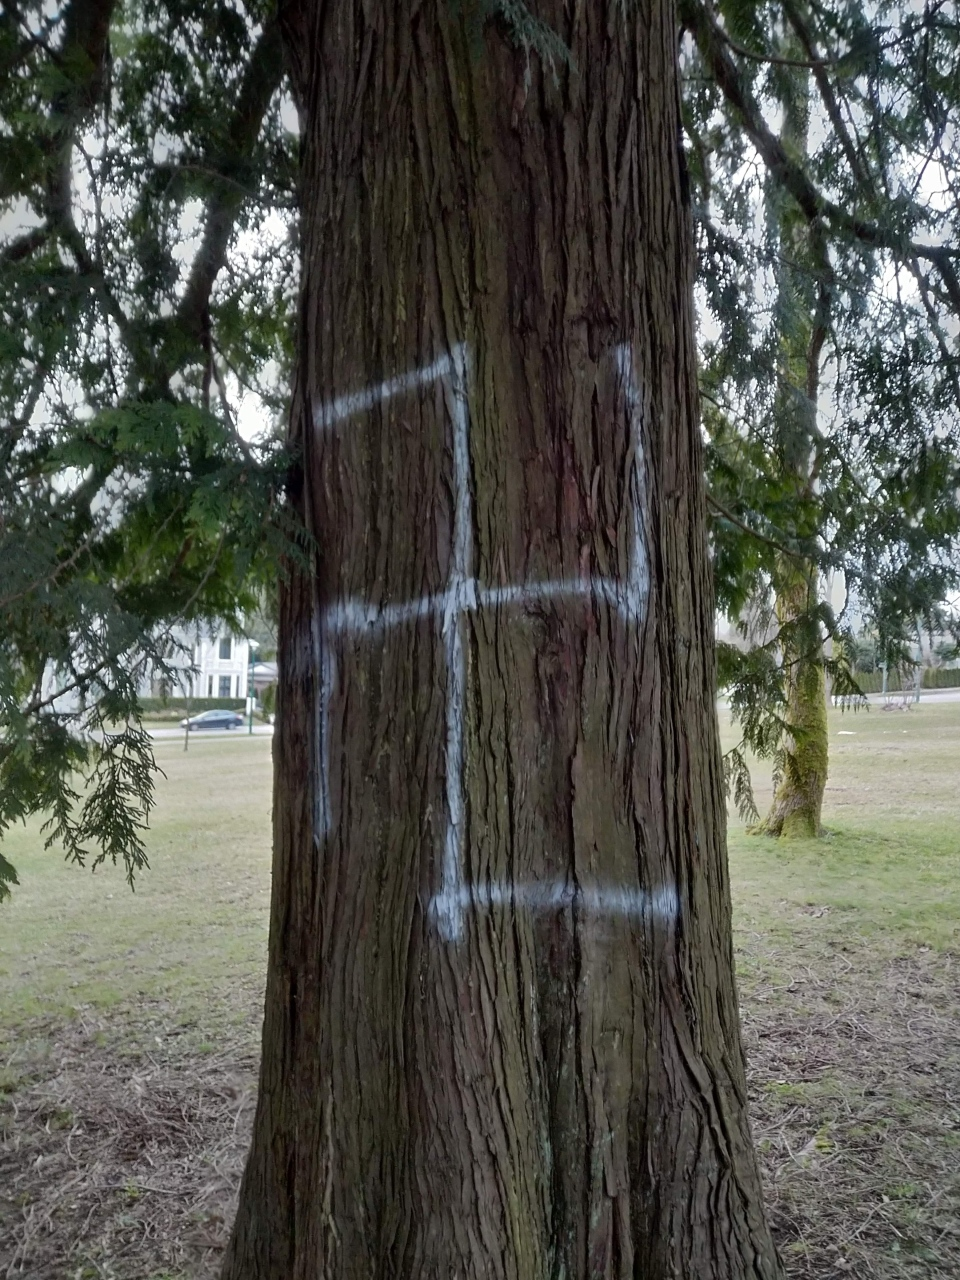 Swastika on tree